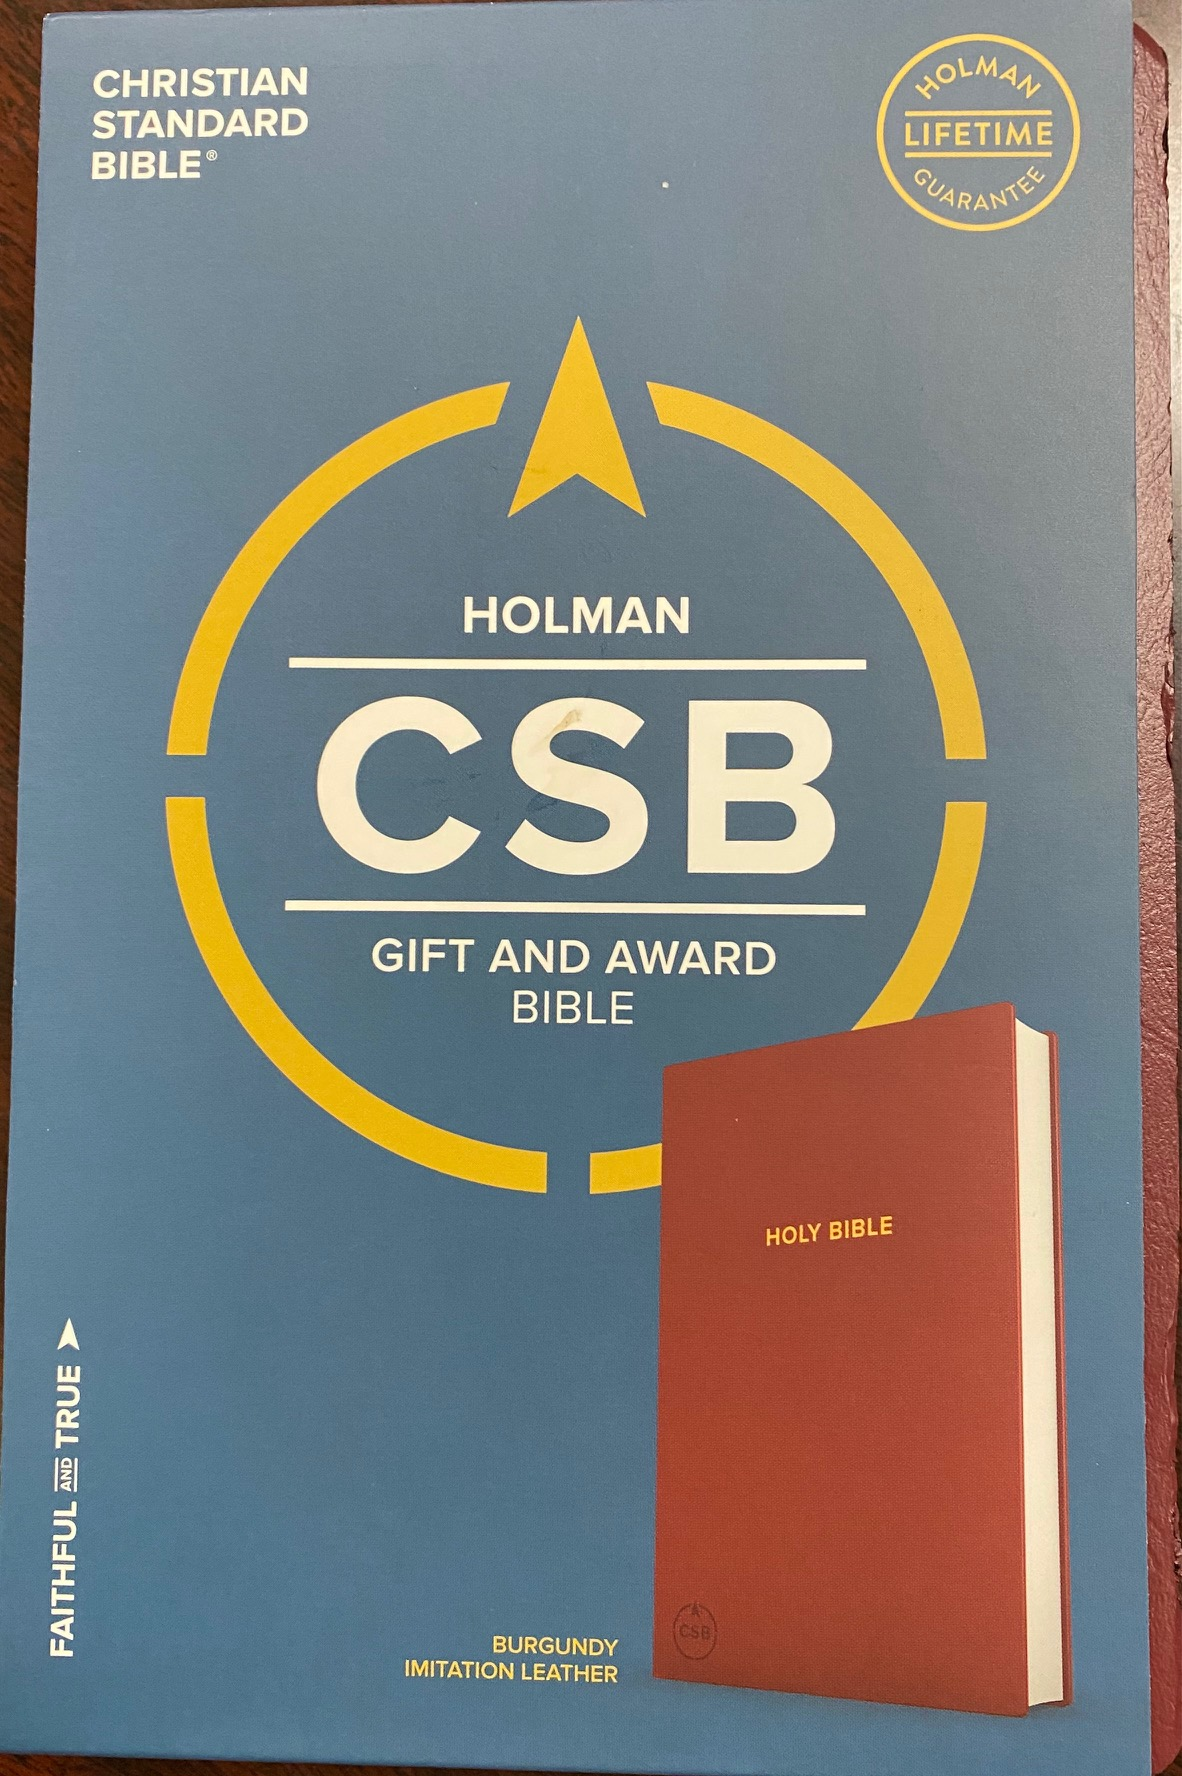 Image for Holy Bible (Christian Standard) (CSB Gift & Award Bible, Burgundy)